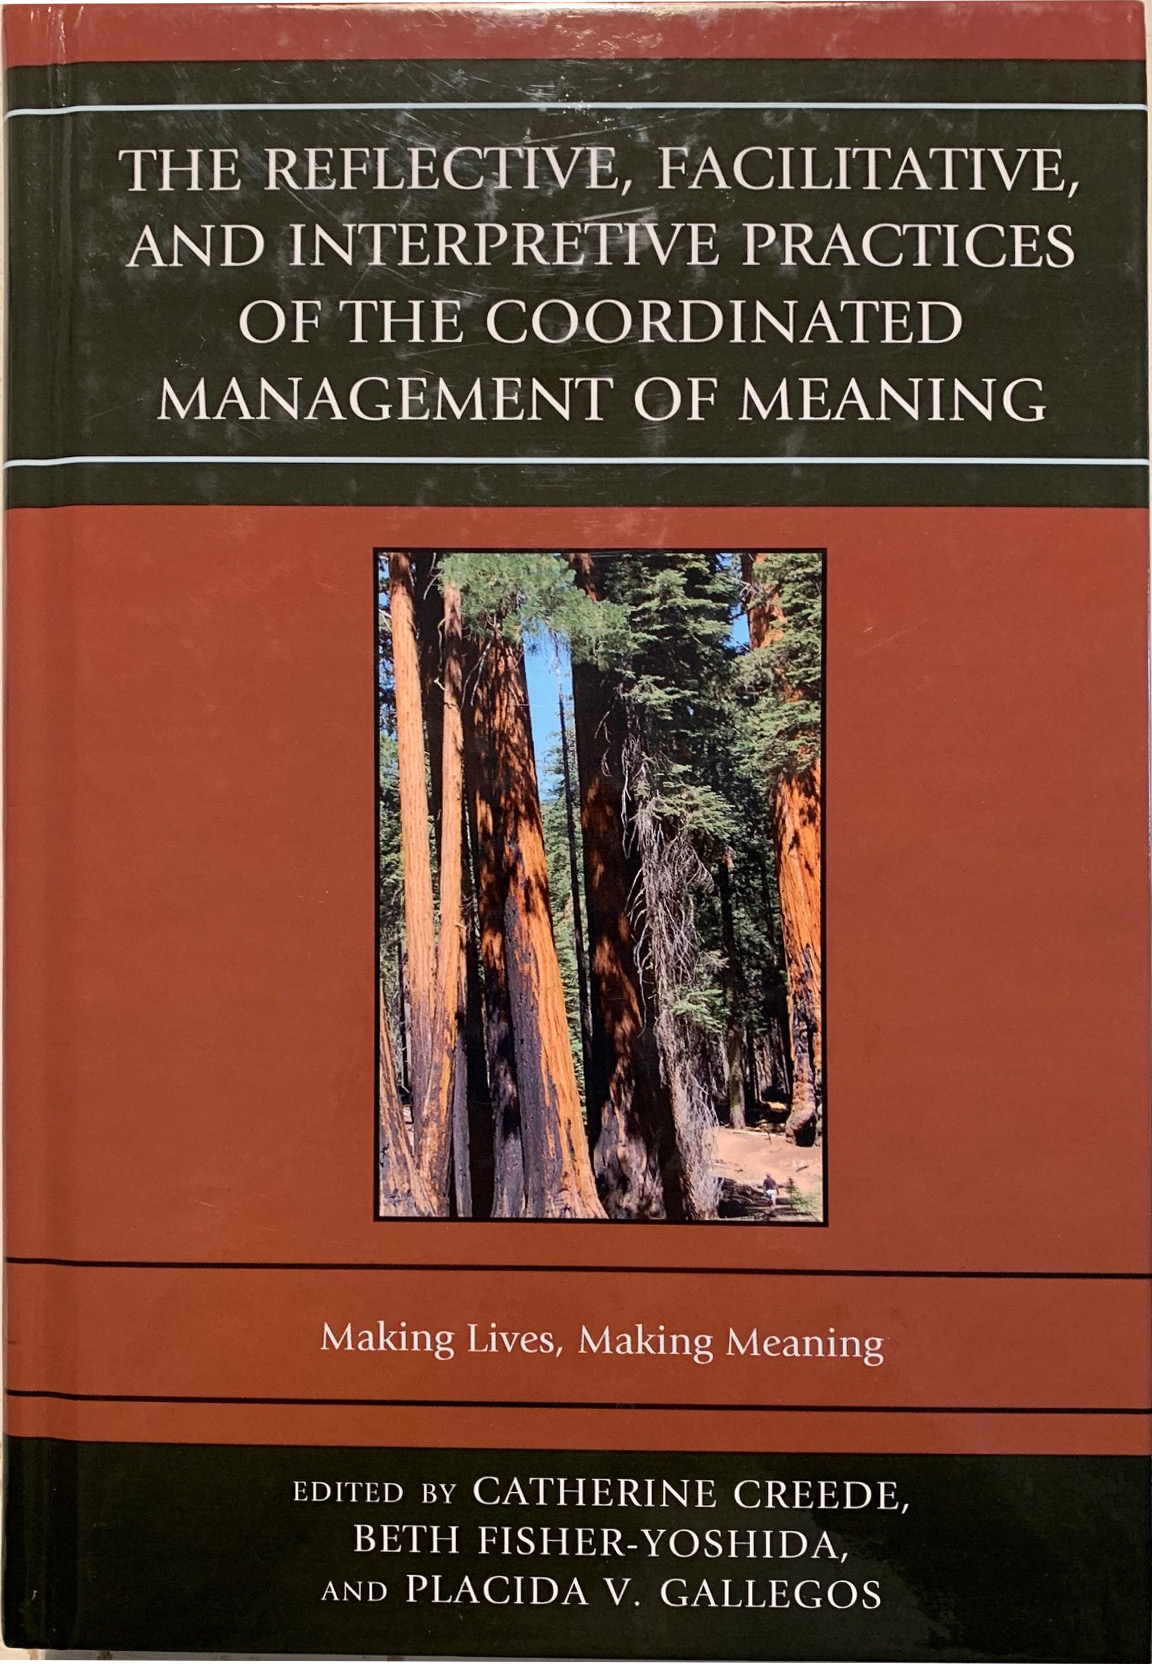 The reflective, facilitative, and interpretative practices of the coordinated management of meaning